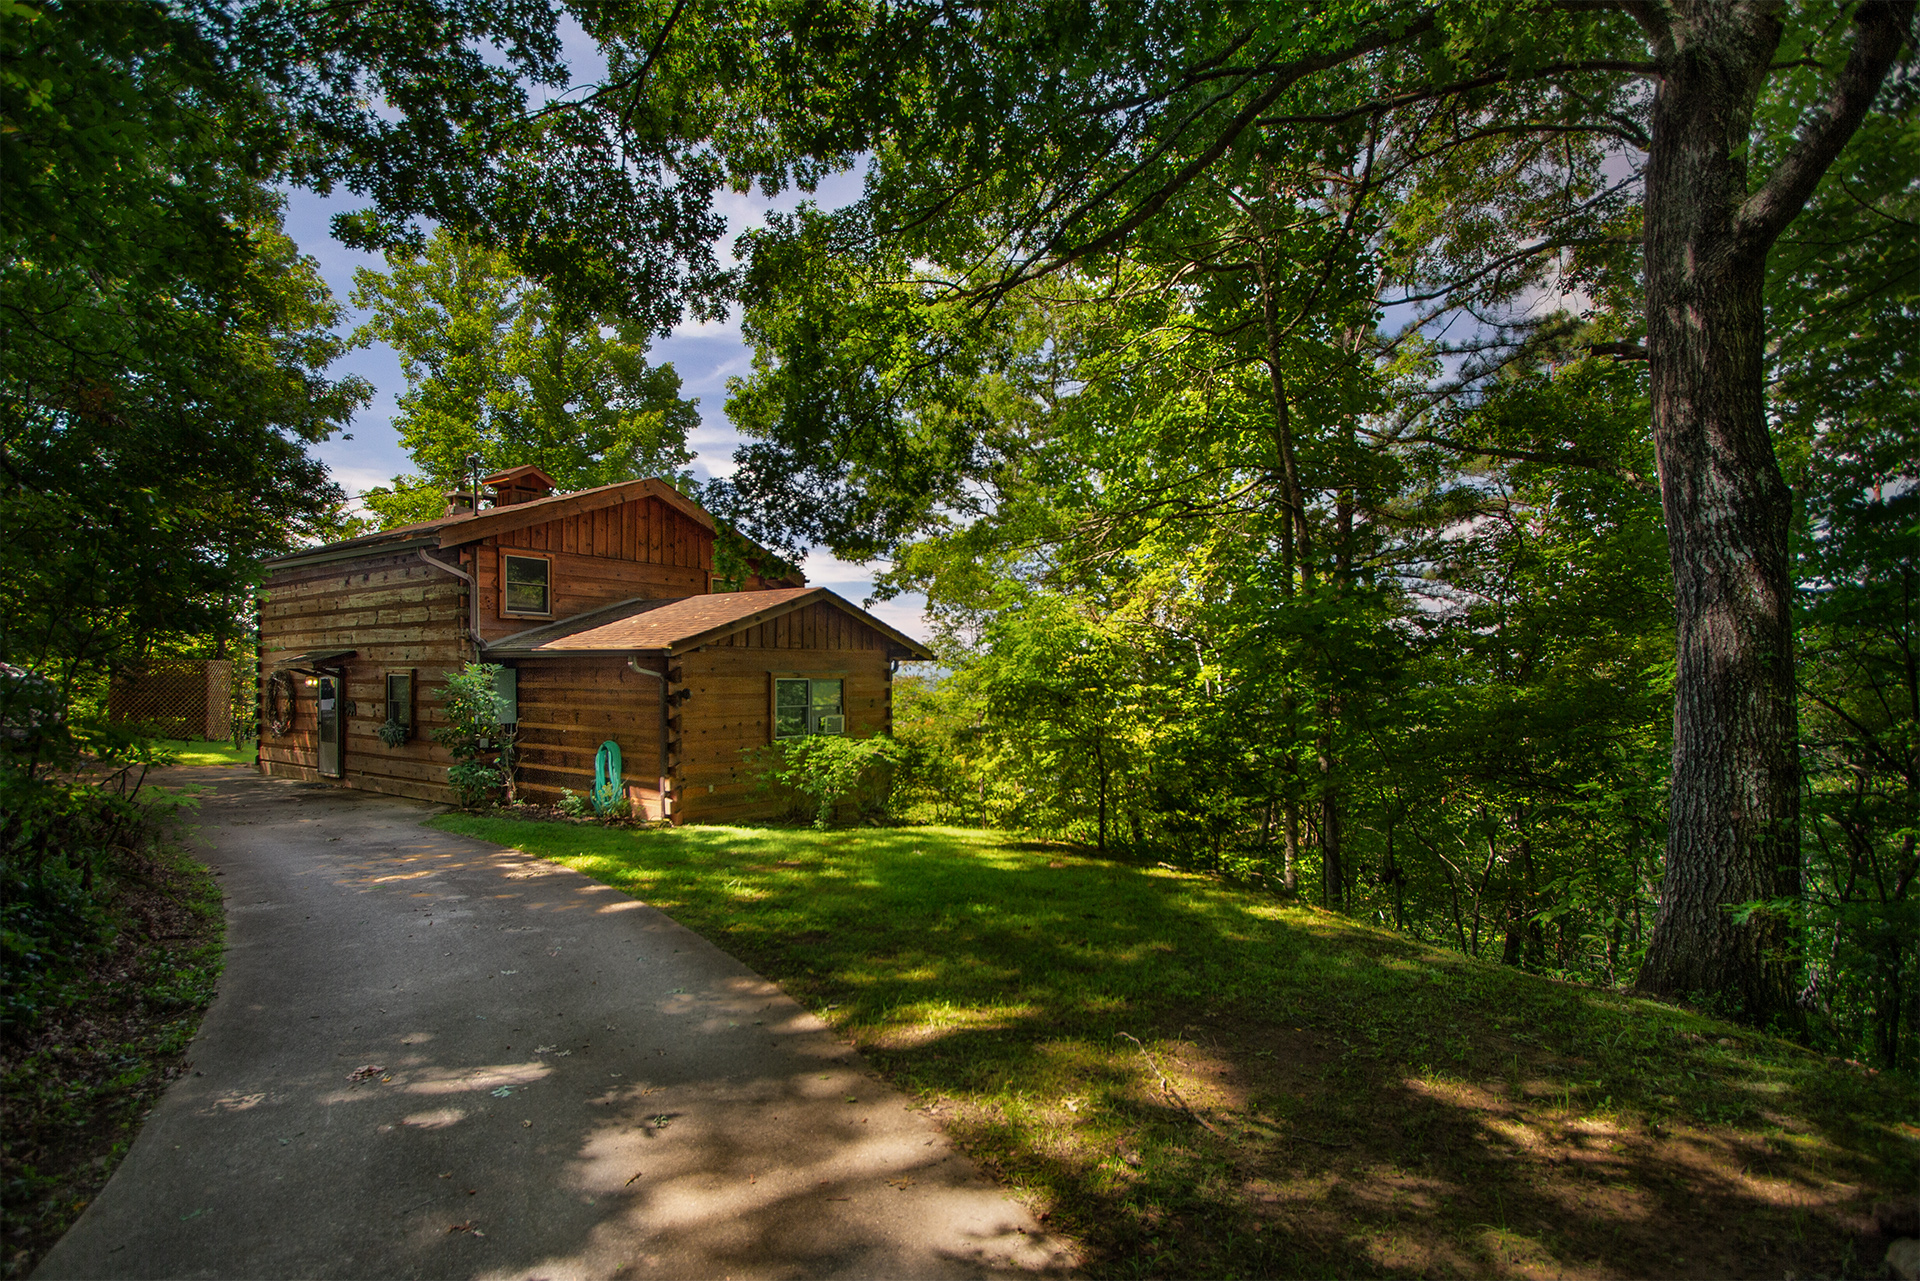 Grandpa 39 s smoky mountain log cabin vacation rental for Cabin rental smokey mountains